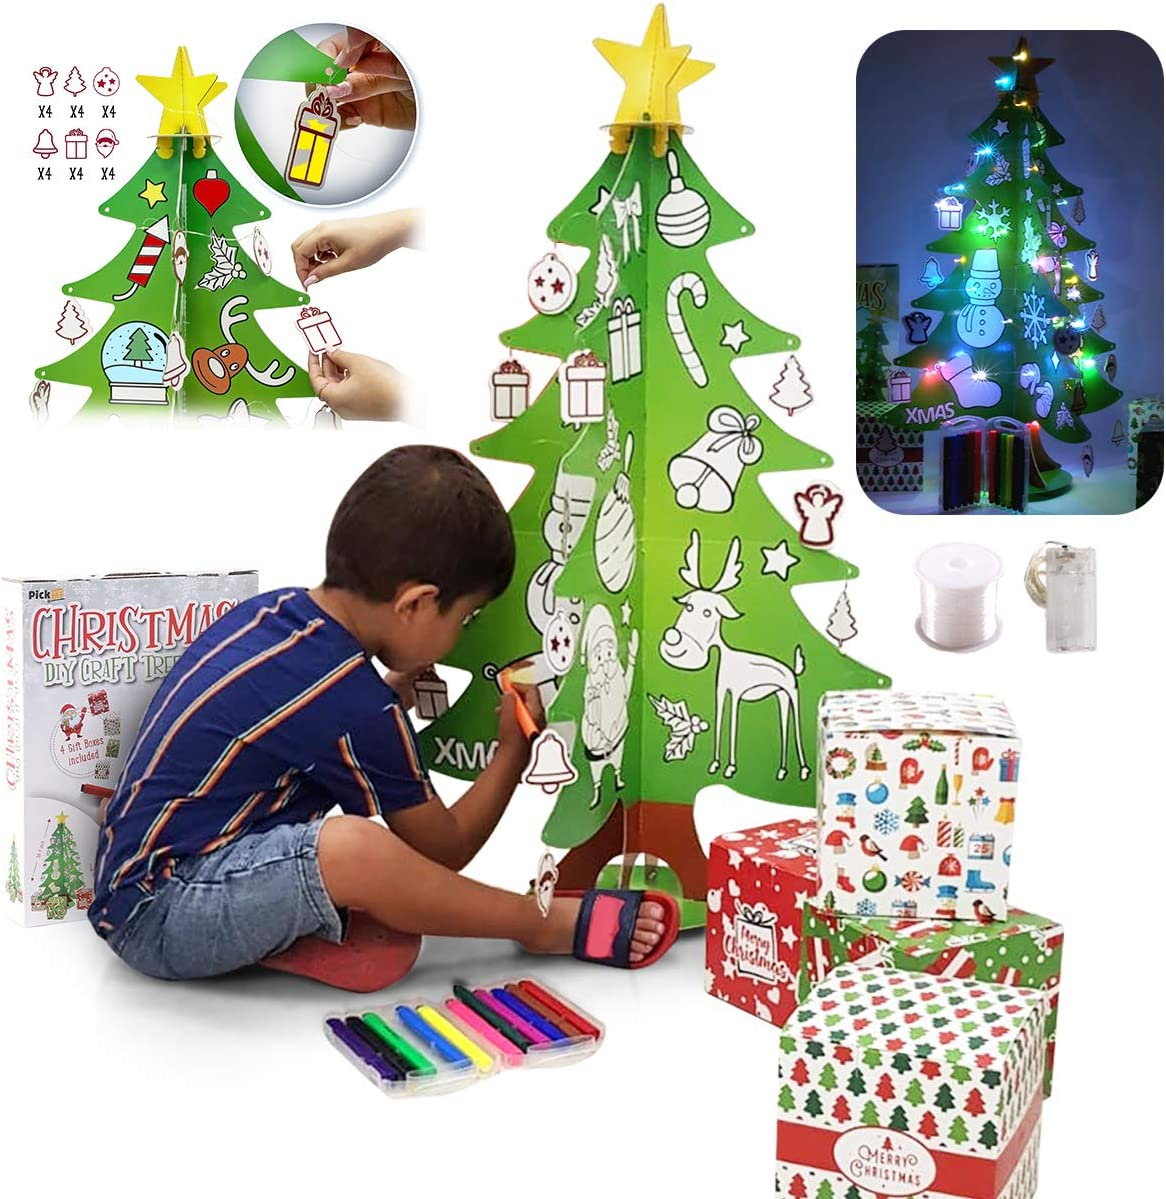 4 Gift Boxes 6Pcs 2.95ft PICKME DIY Craft Christmas Tree for Kids 3M LED Strip Light Mini 3D Coloring Xmas Tree with 24 Ornaments for Home /& Classroom 12 Washable Markers